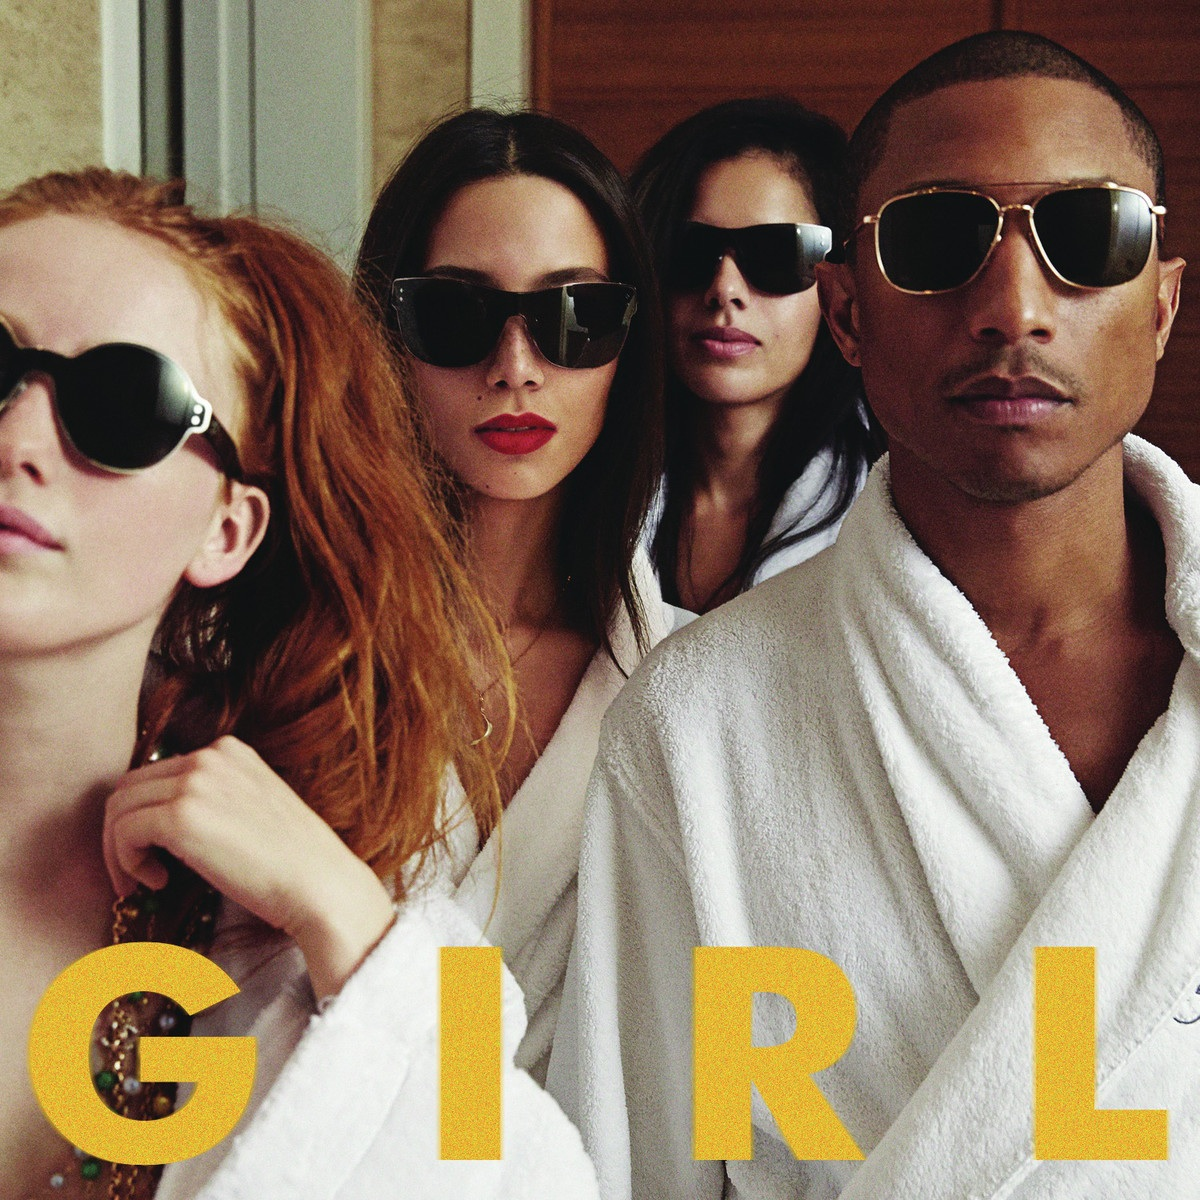 Pharrell Williams to Host Exclusive Listening Party for New Album 'GIRL'